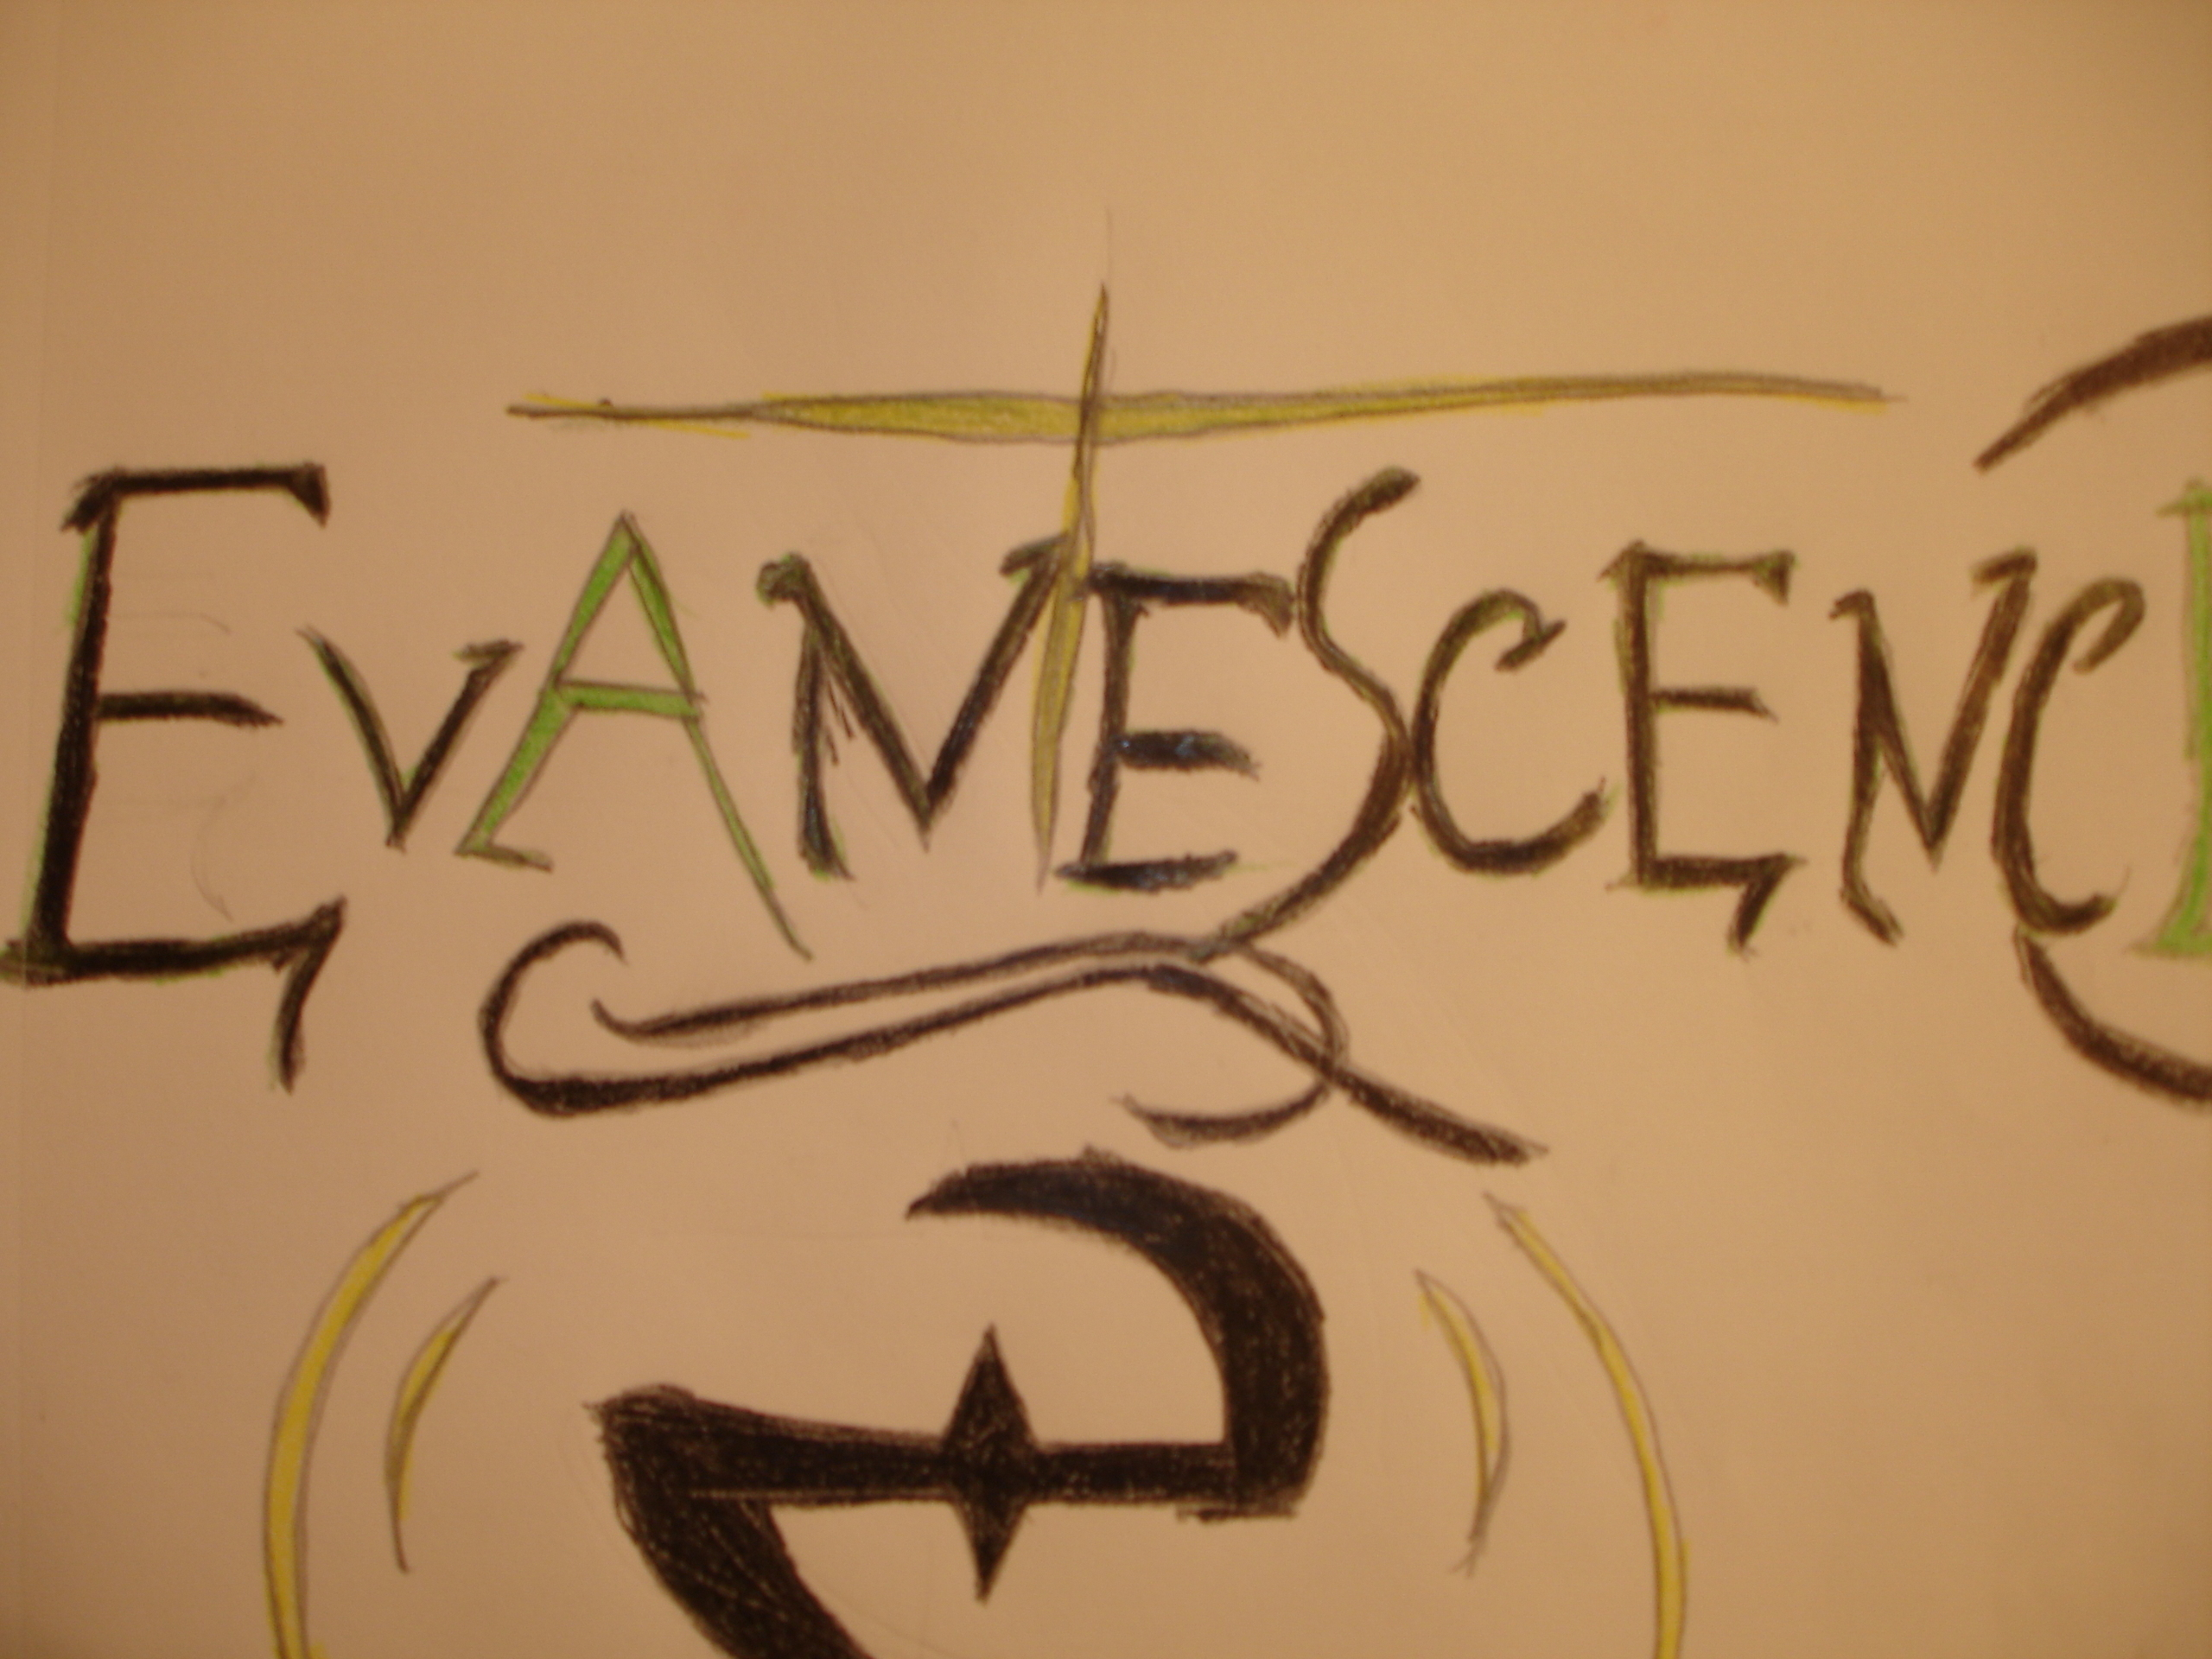 My version of the evanescence logo